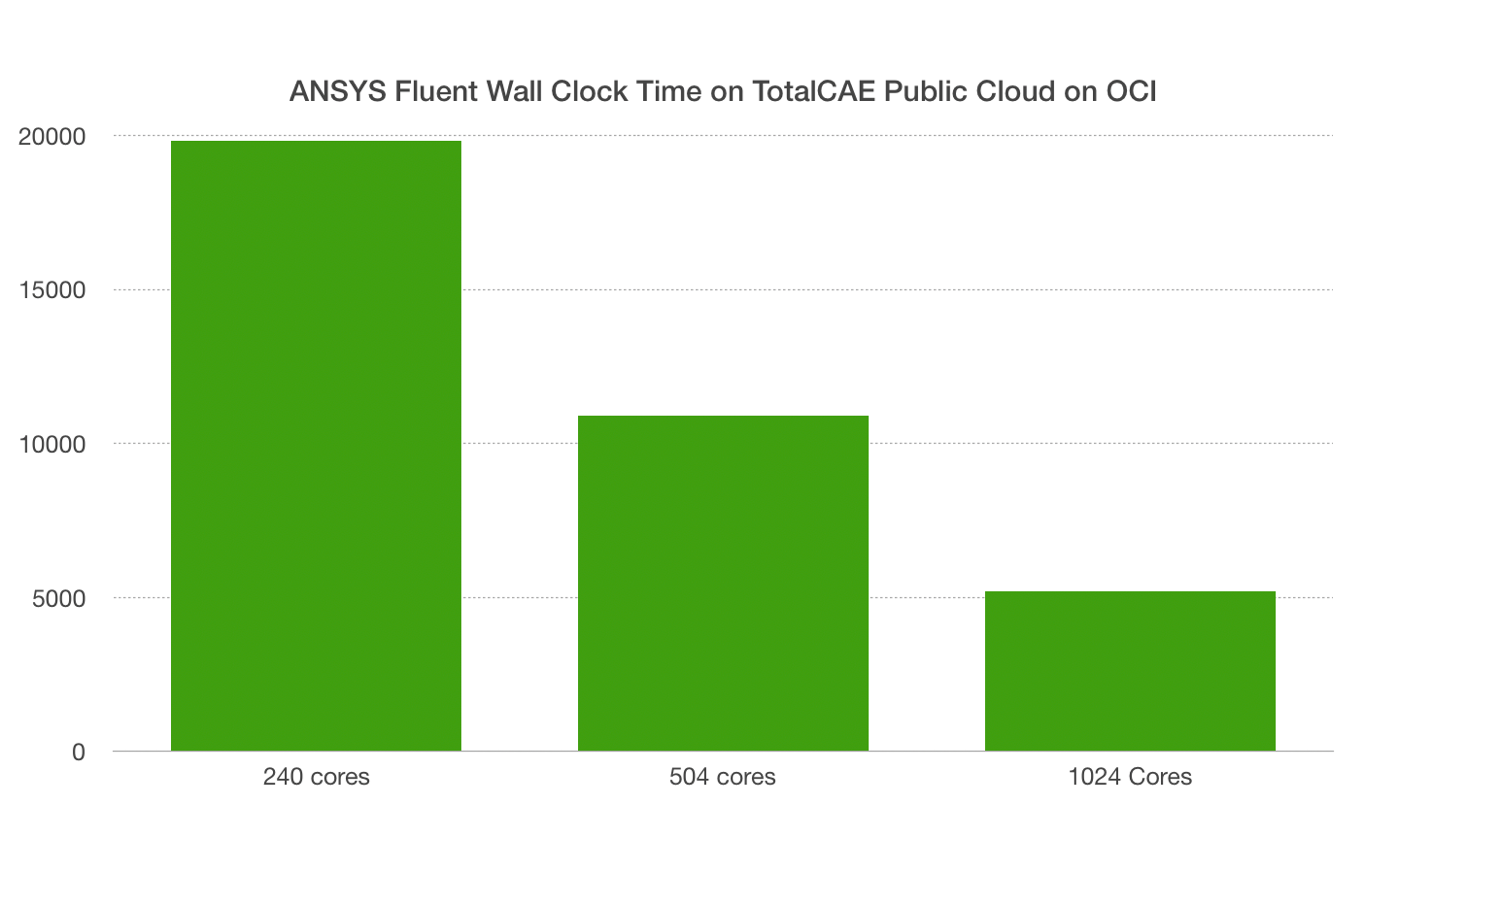 ANSYS Fluent Scaling with TotalCAE Cloud on OCI